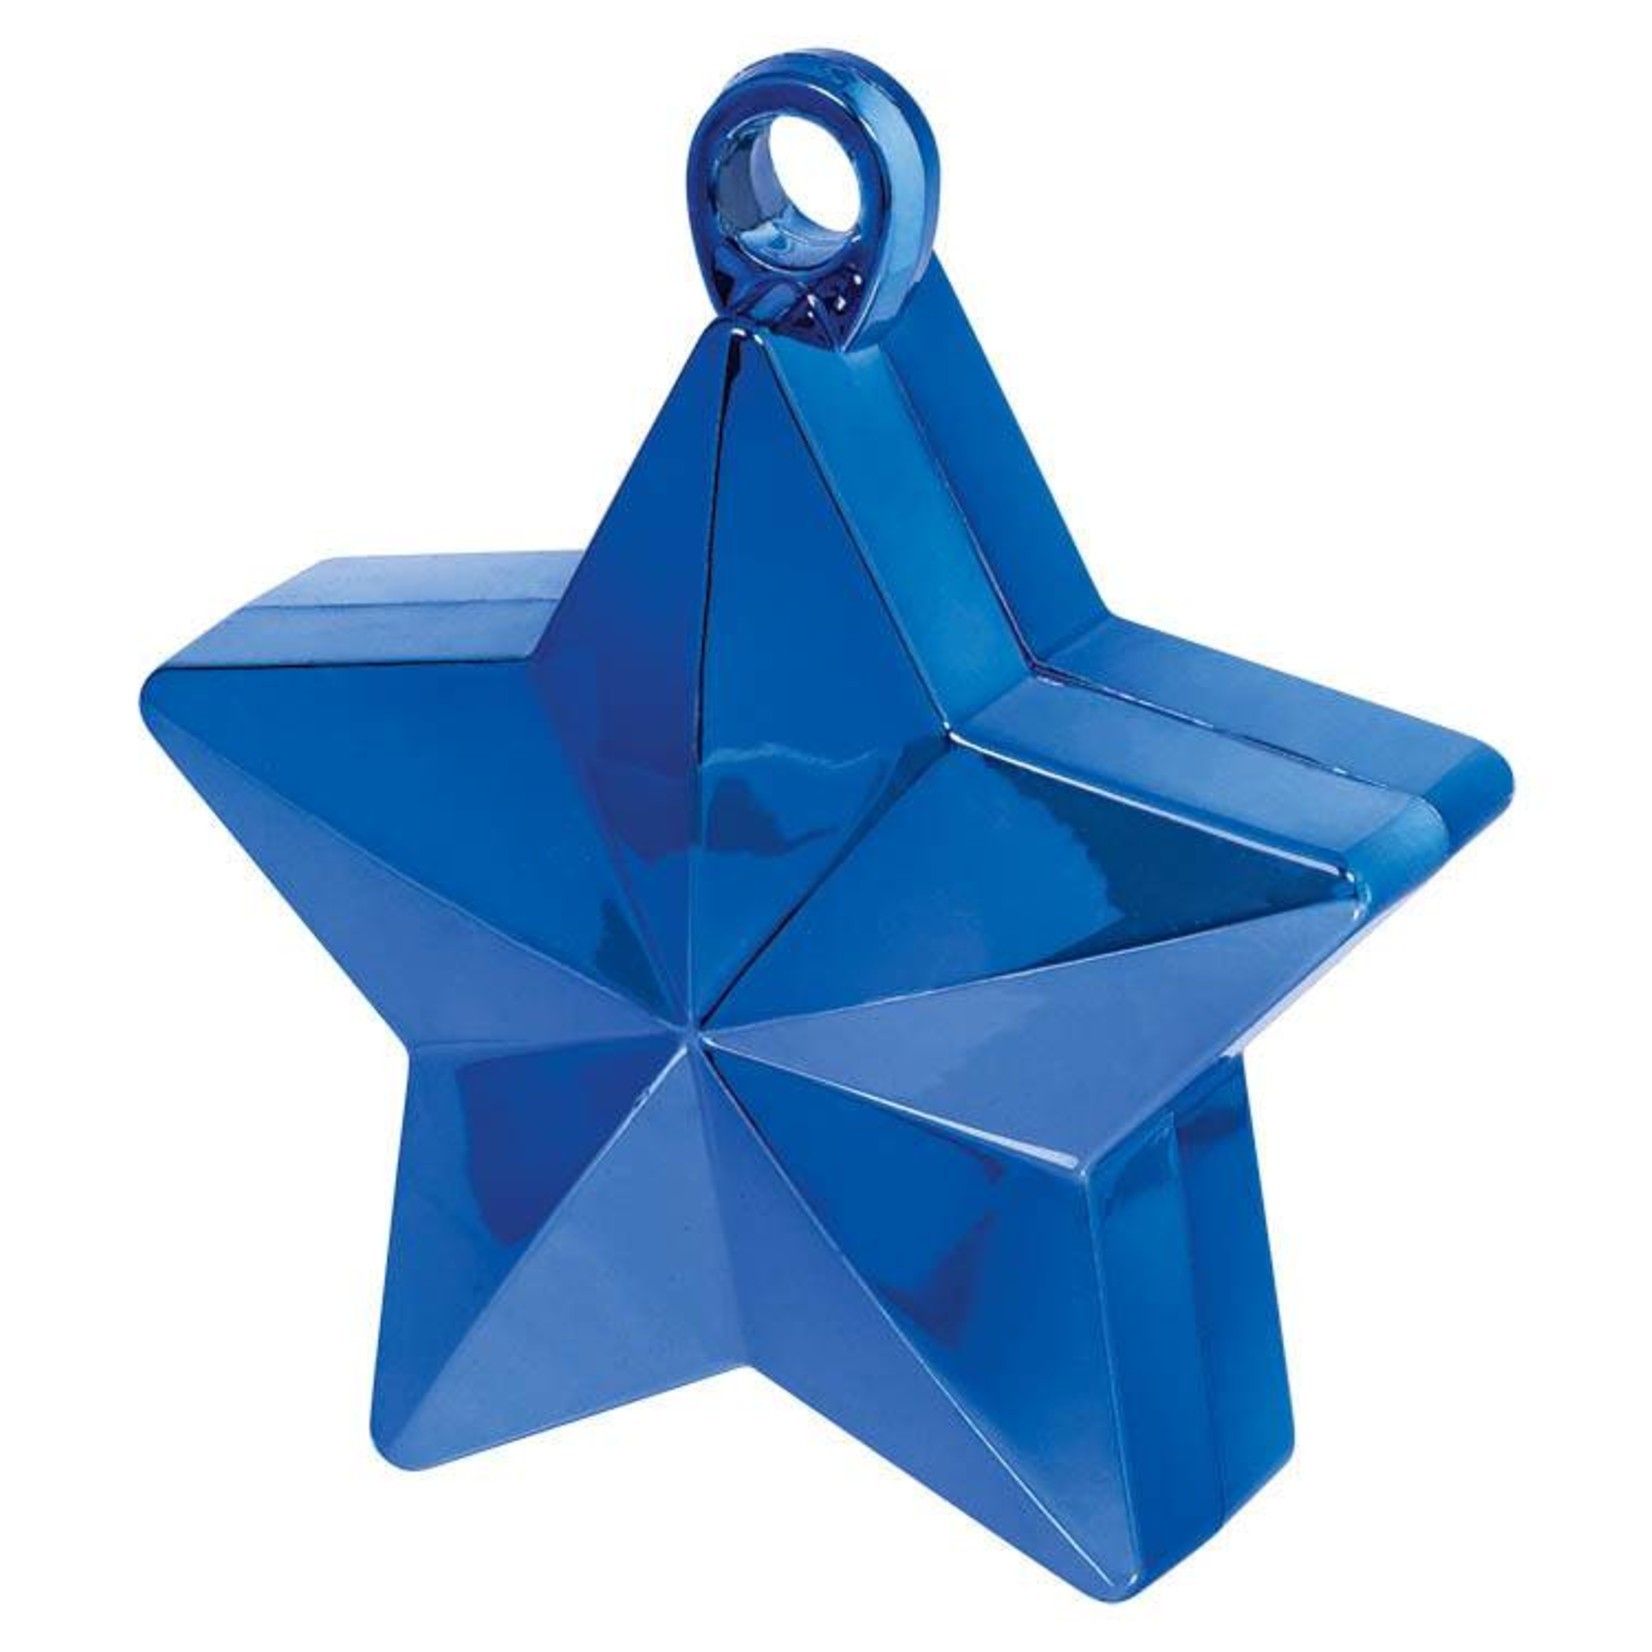 Balloon Weight-Star Electroplated-Blue-6oz